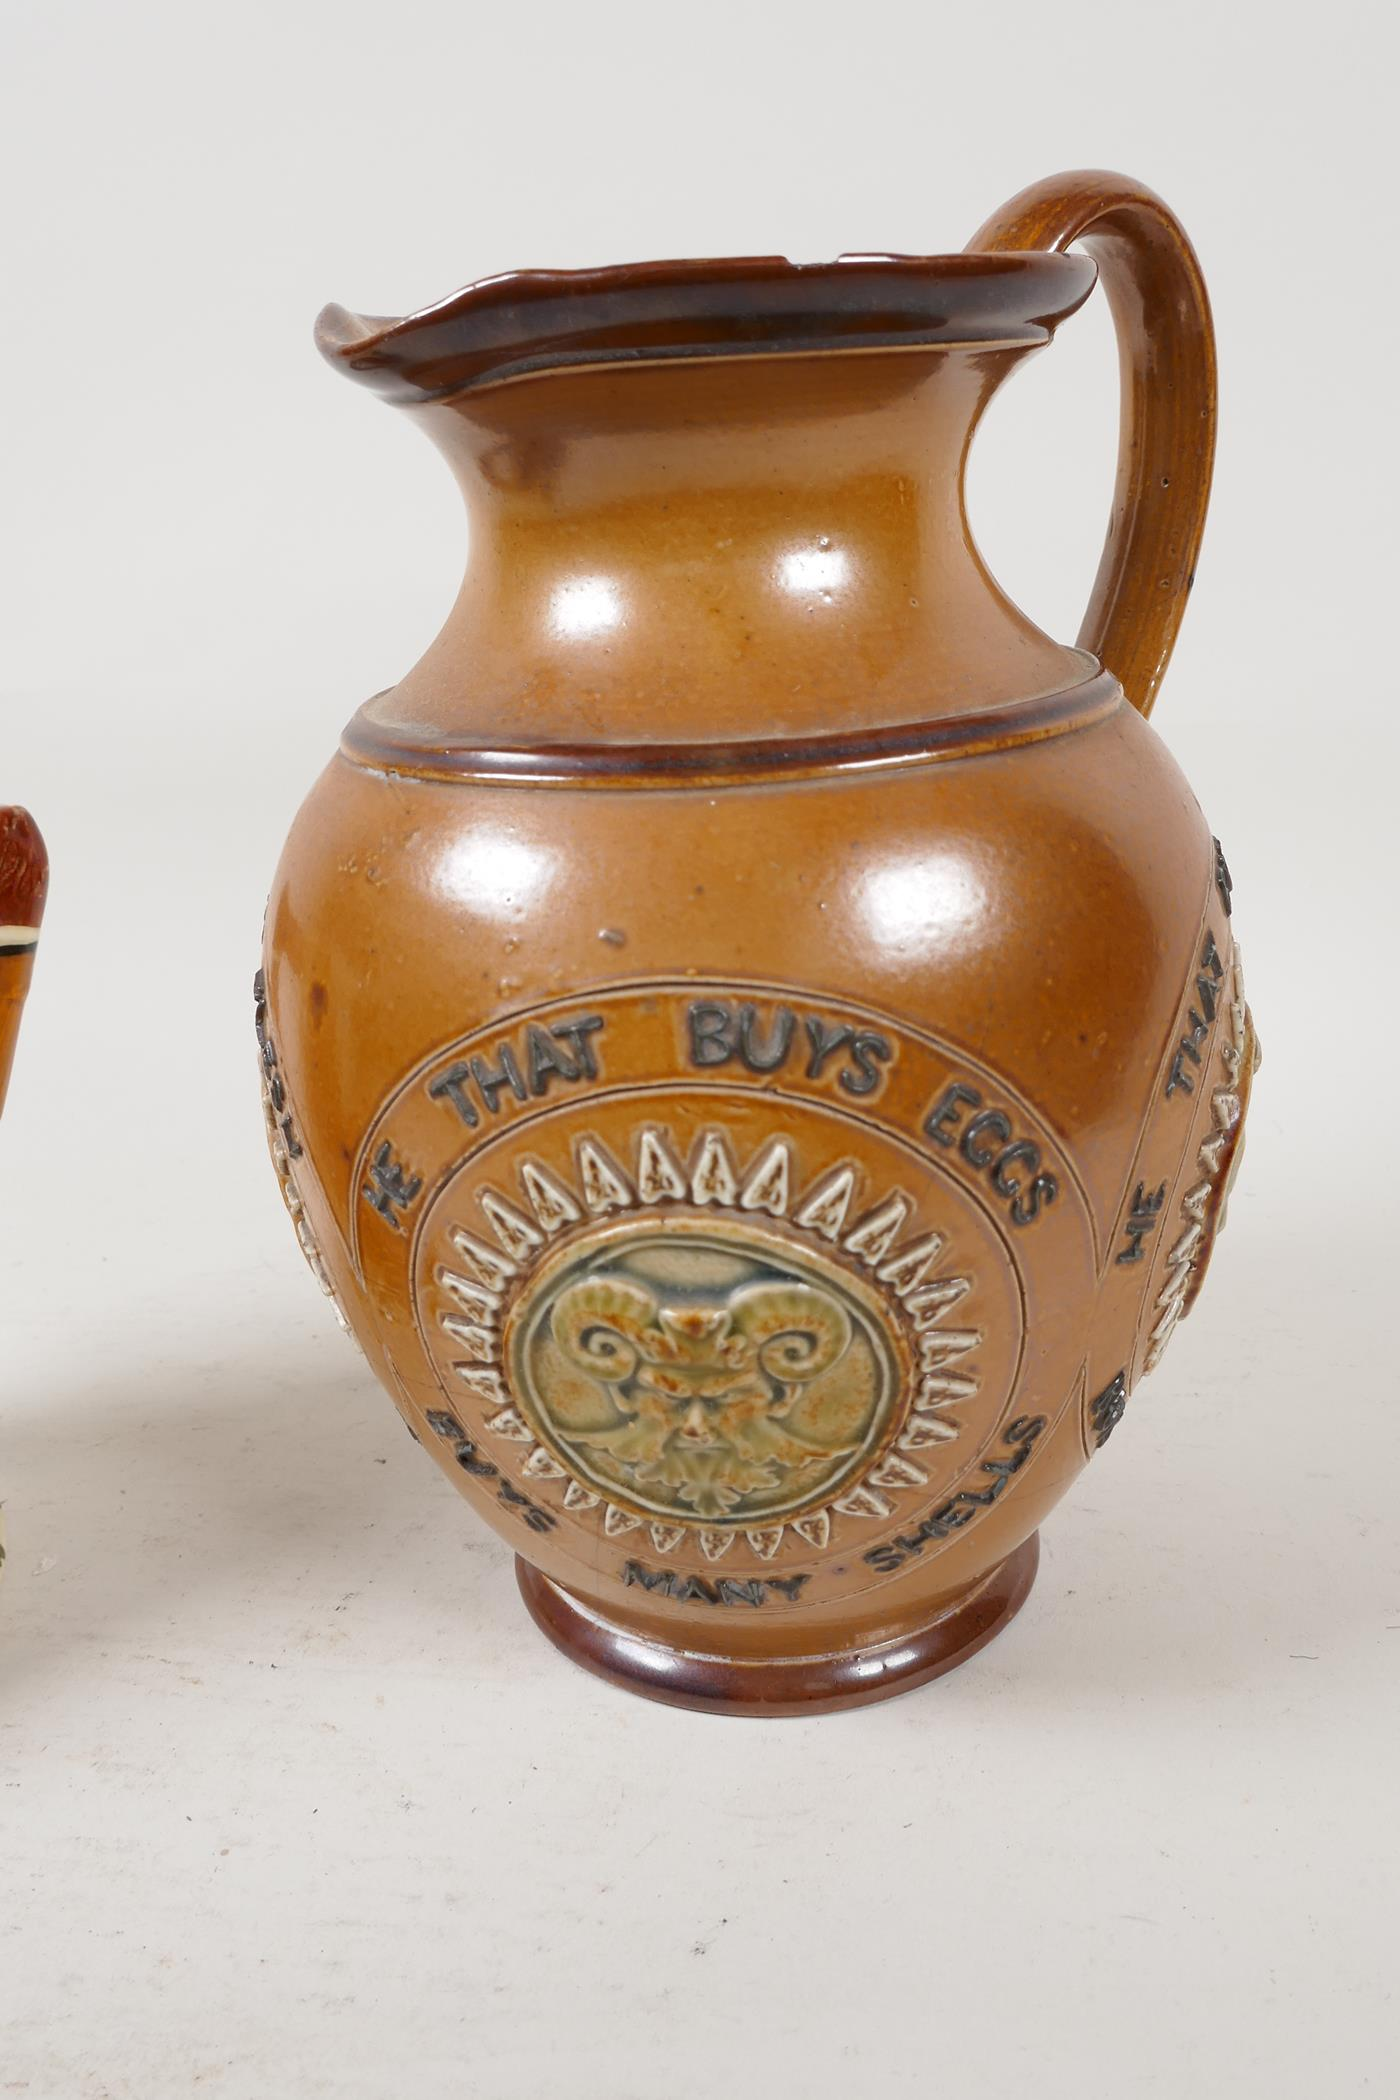 A Doulton Lambeth stoneware jug bearing the legend 'He that buys good ale' embossed with various - Image 3 of 5